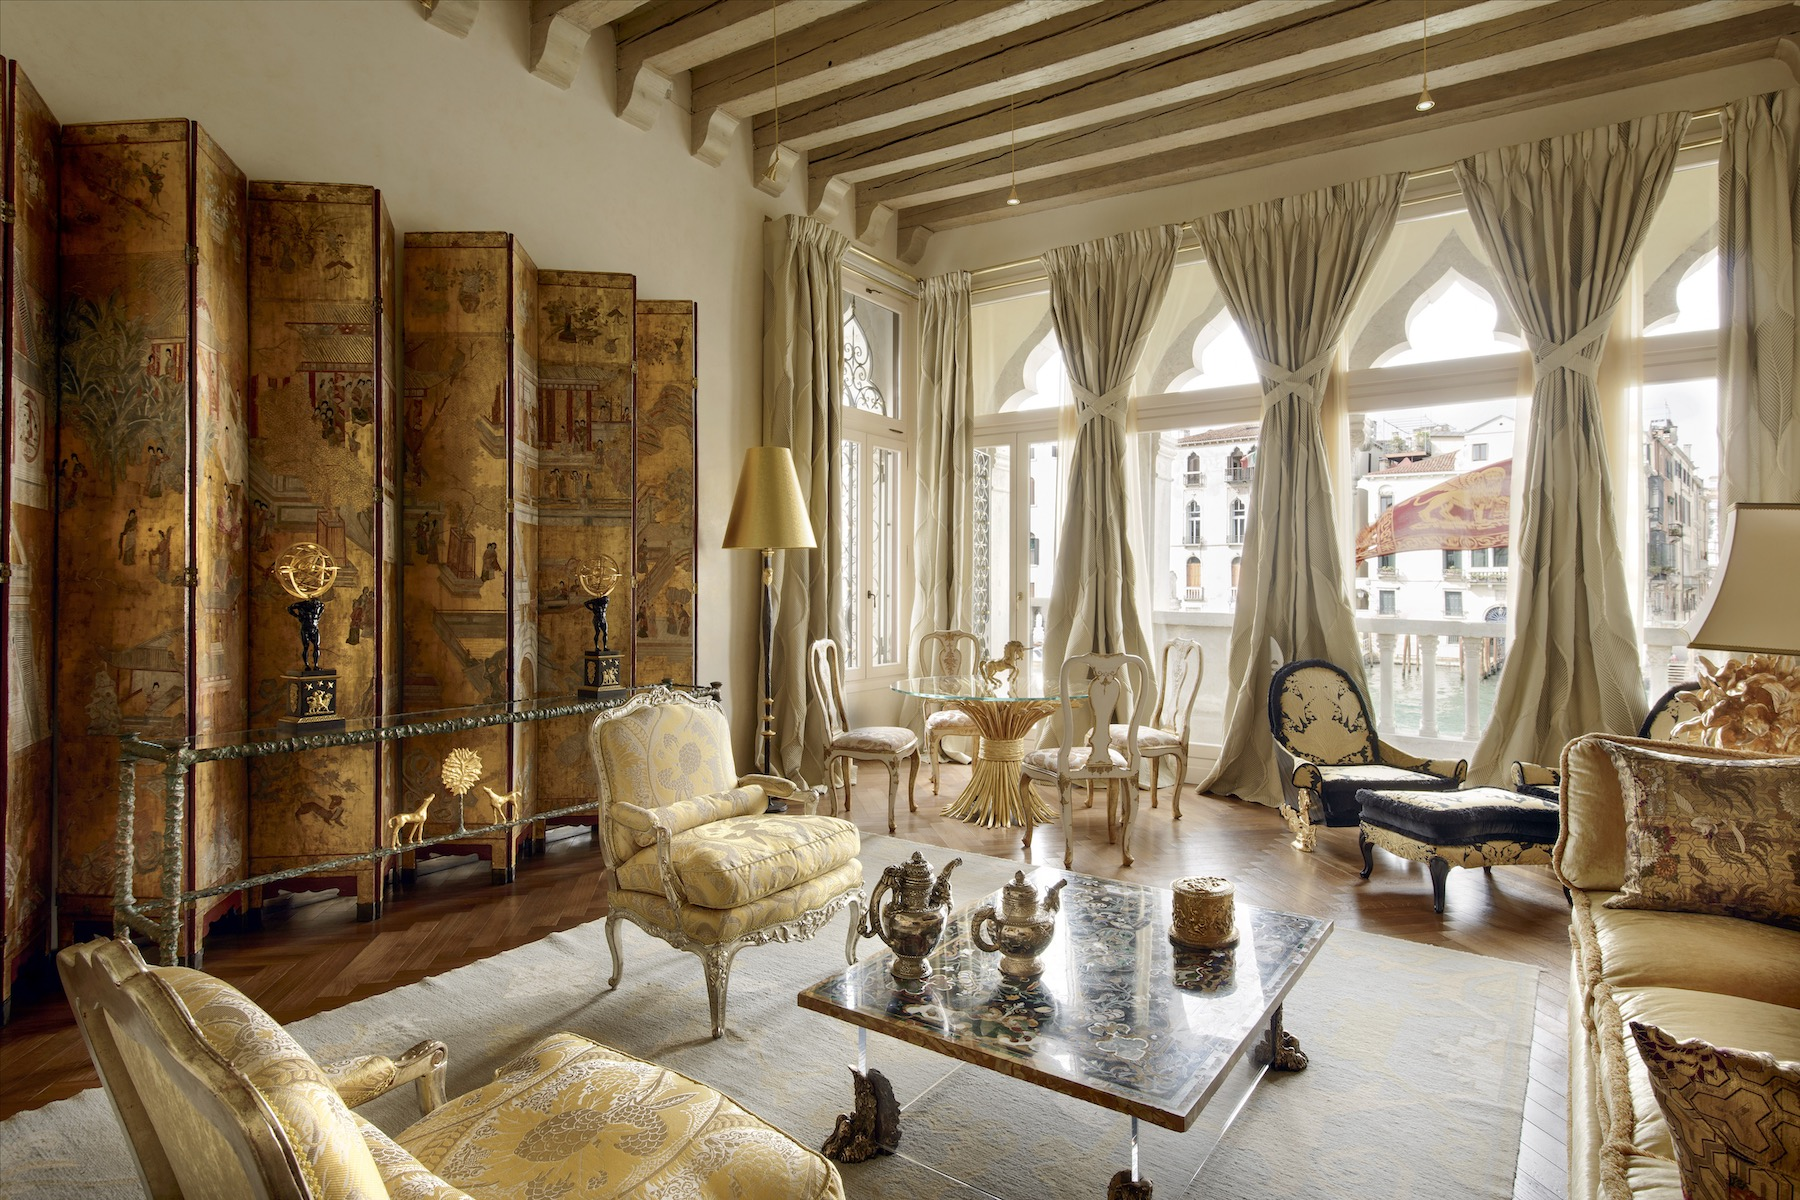 Apartment for Sale at Orio Grand Canal Dorsoduro Venice, Venice, Italy